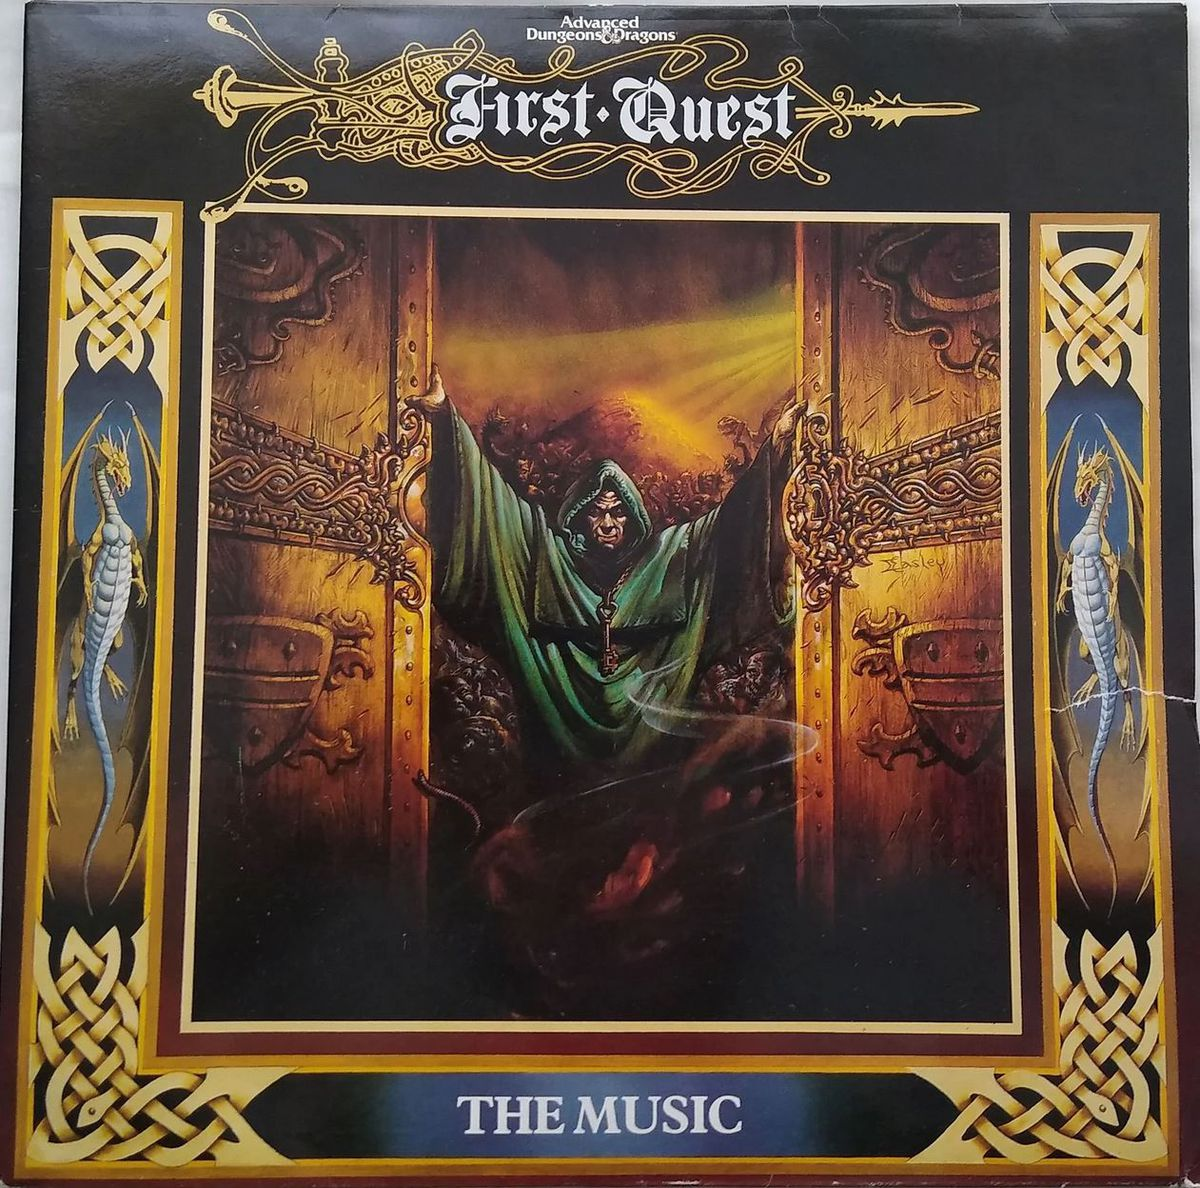 The cover art for First Quest, featuring art by Easley seen on the cover of the DMG.